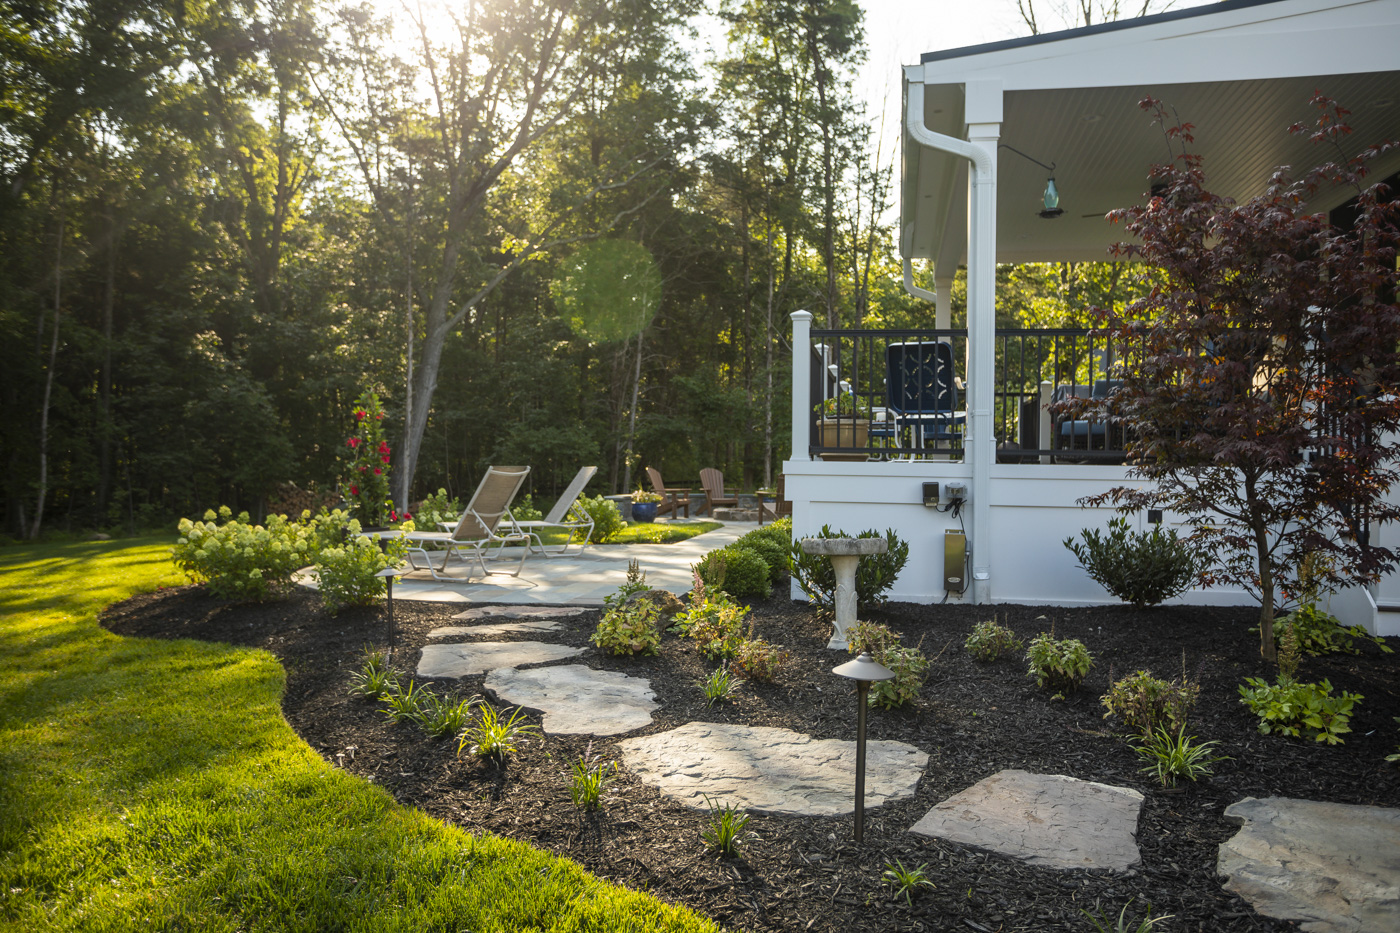 Connecting Areas in Your Great Falls, VA Landscape Design: Planning Transitions with Walkways, Stairs, Lawn & More